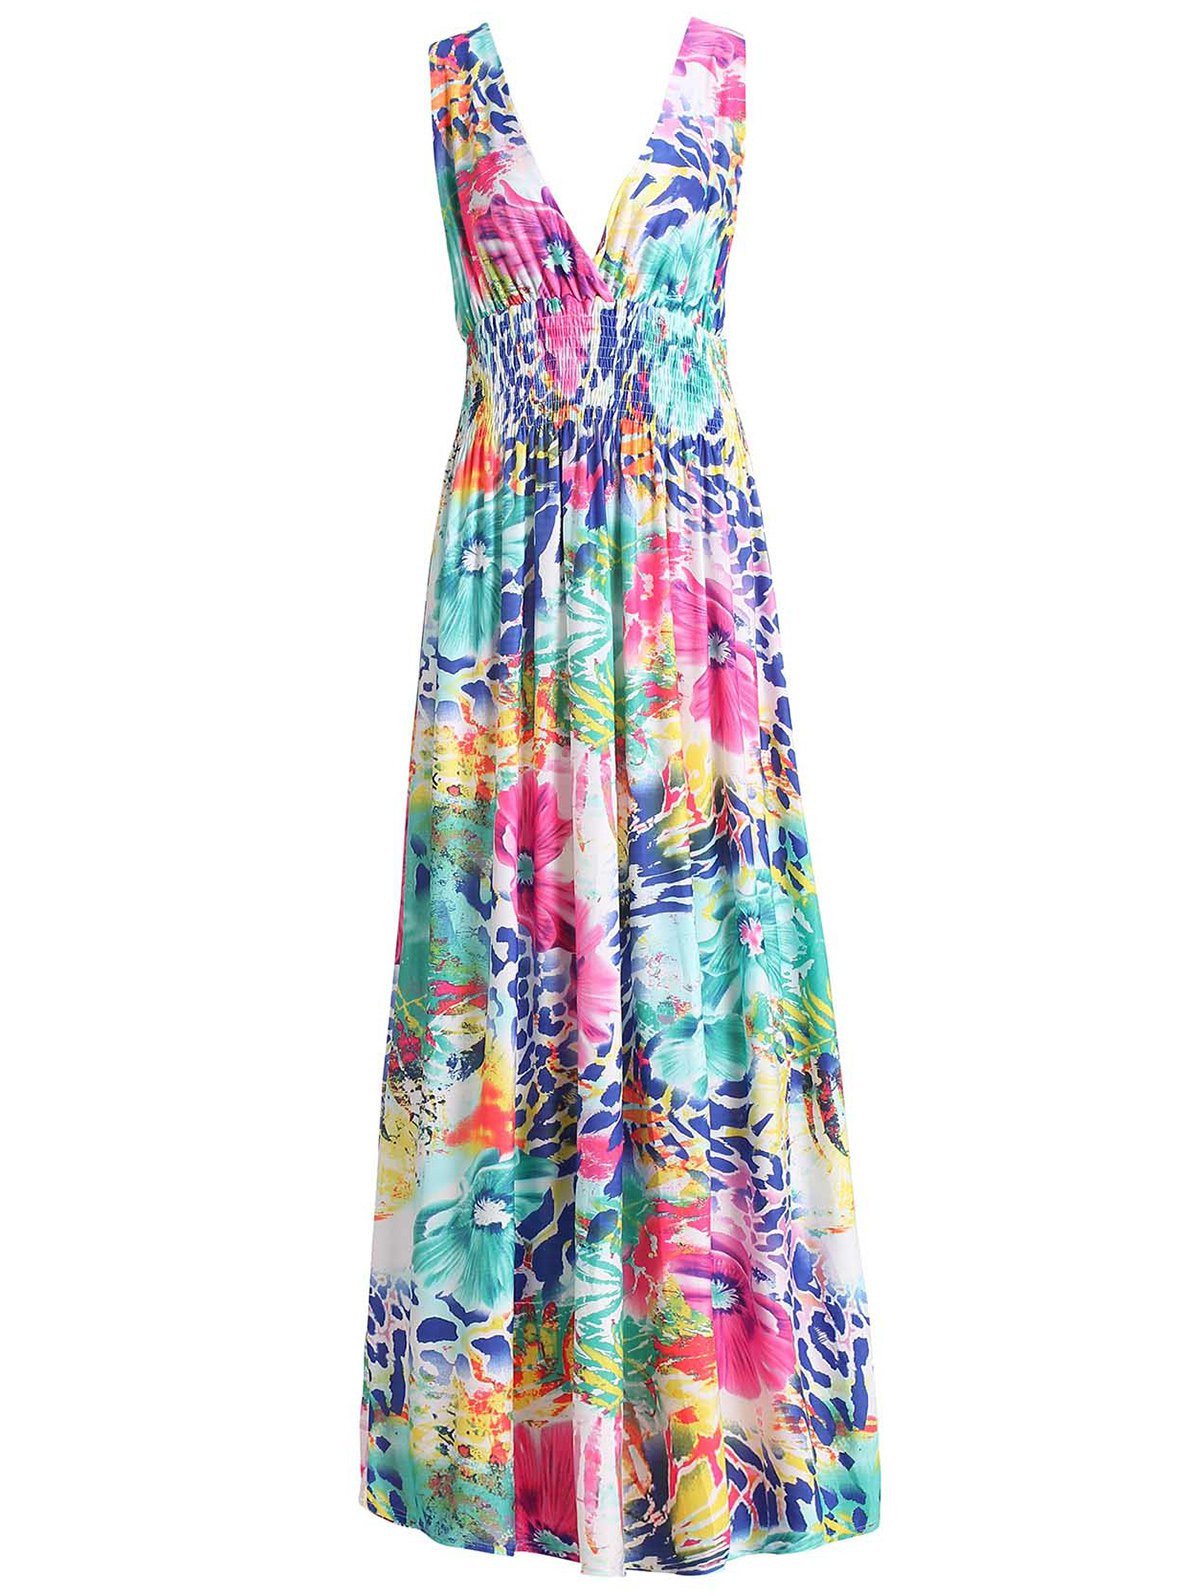 Sexy Colorful Floral Print Plunging Neck Sleeveless Dress For Women - GREEN 2XL